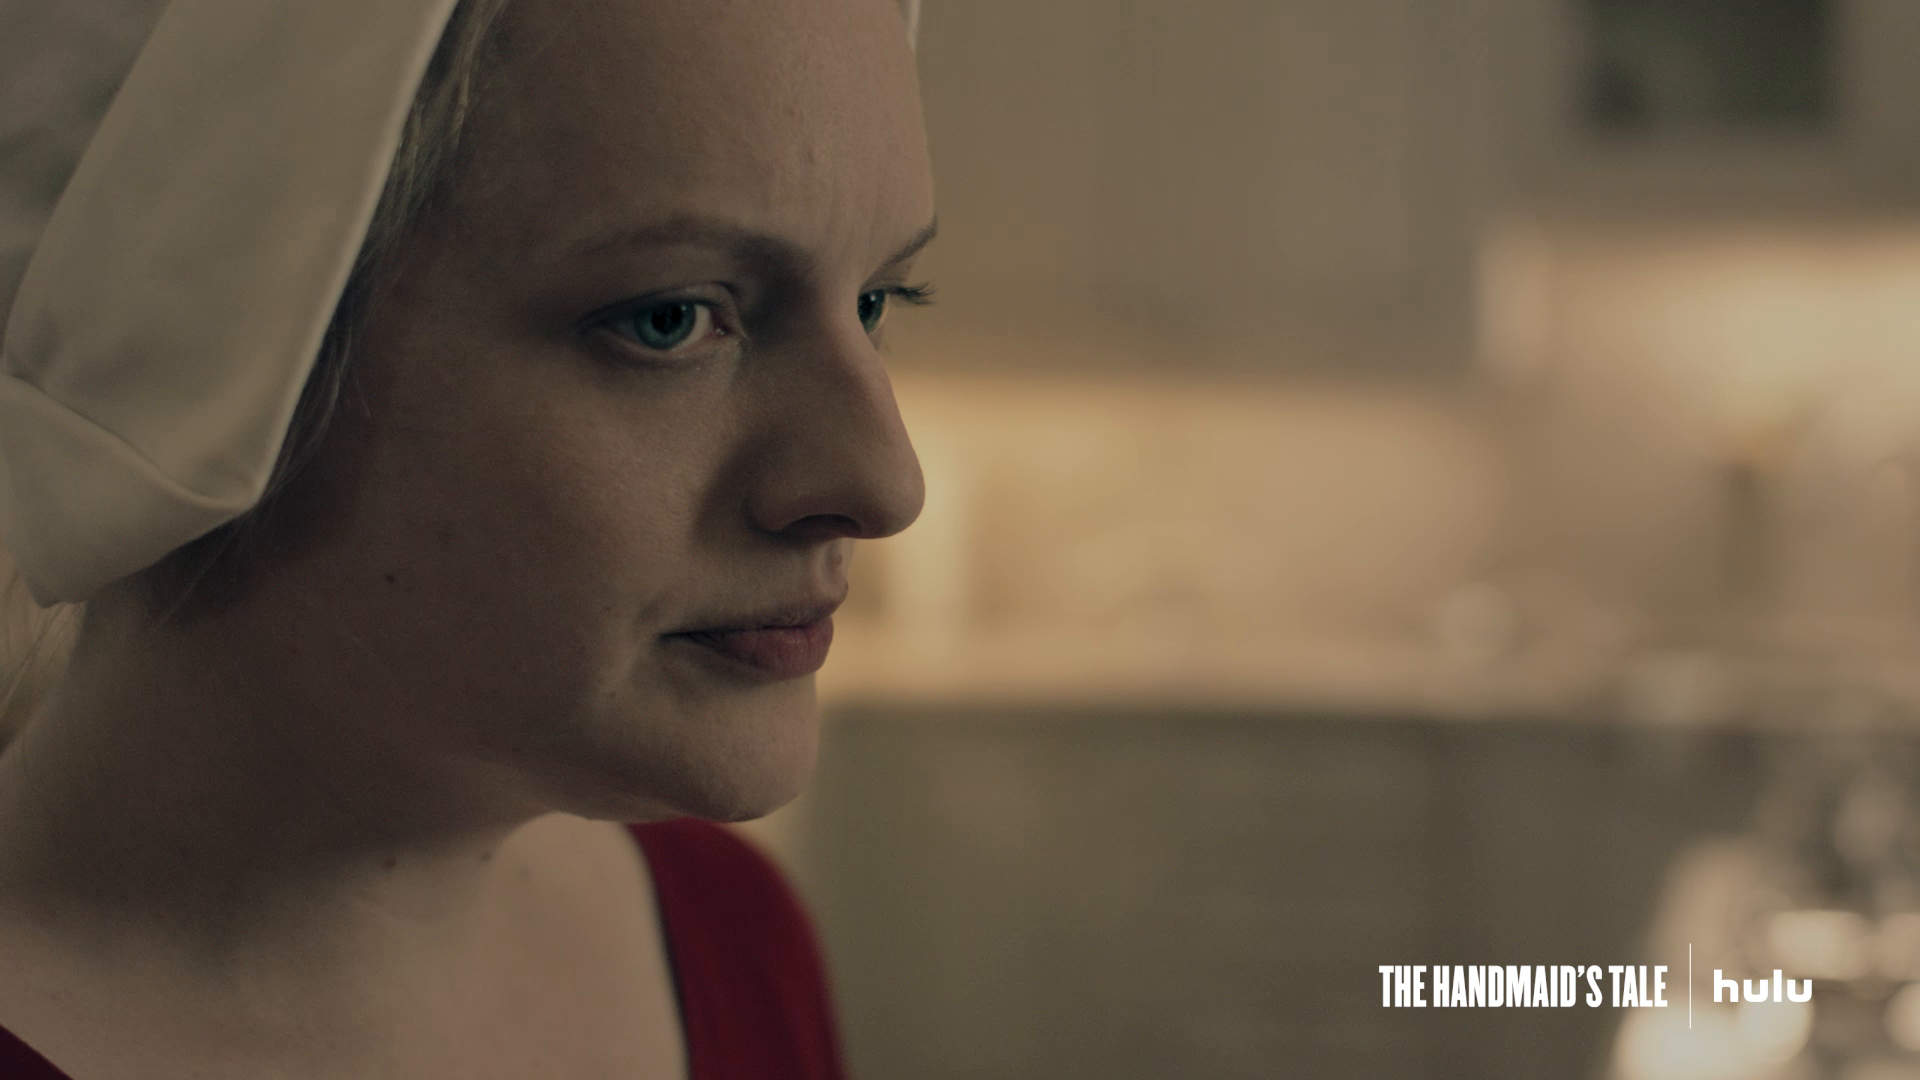 Hulu - The Handmaid's Tale Integrated Campaign | Clios